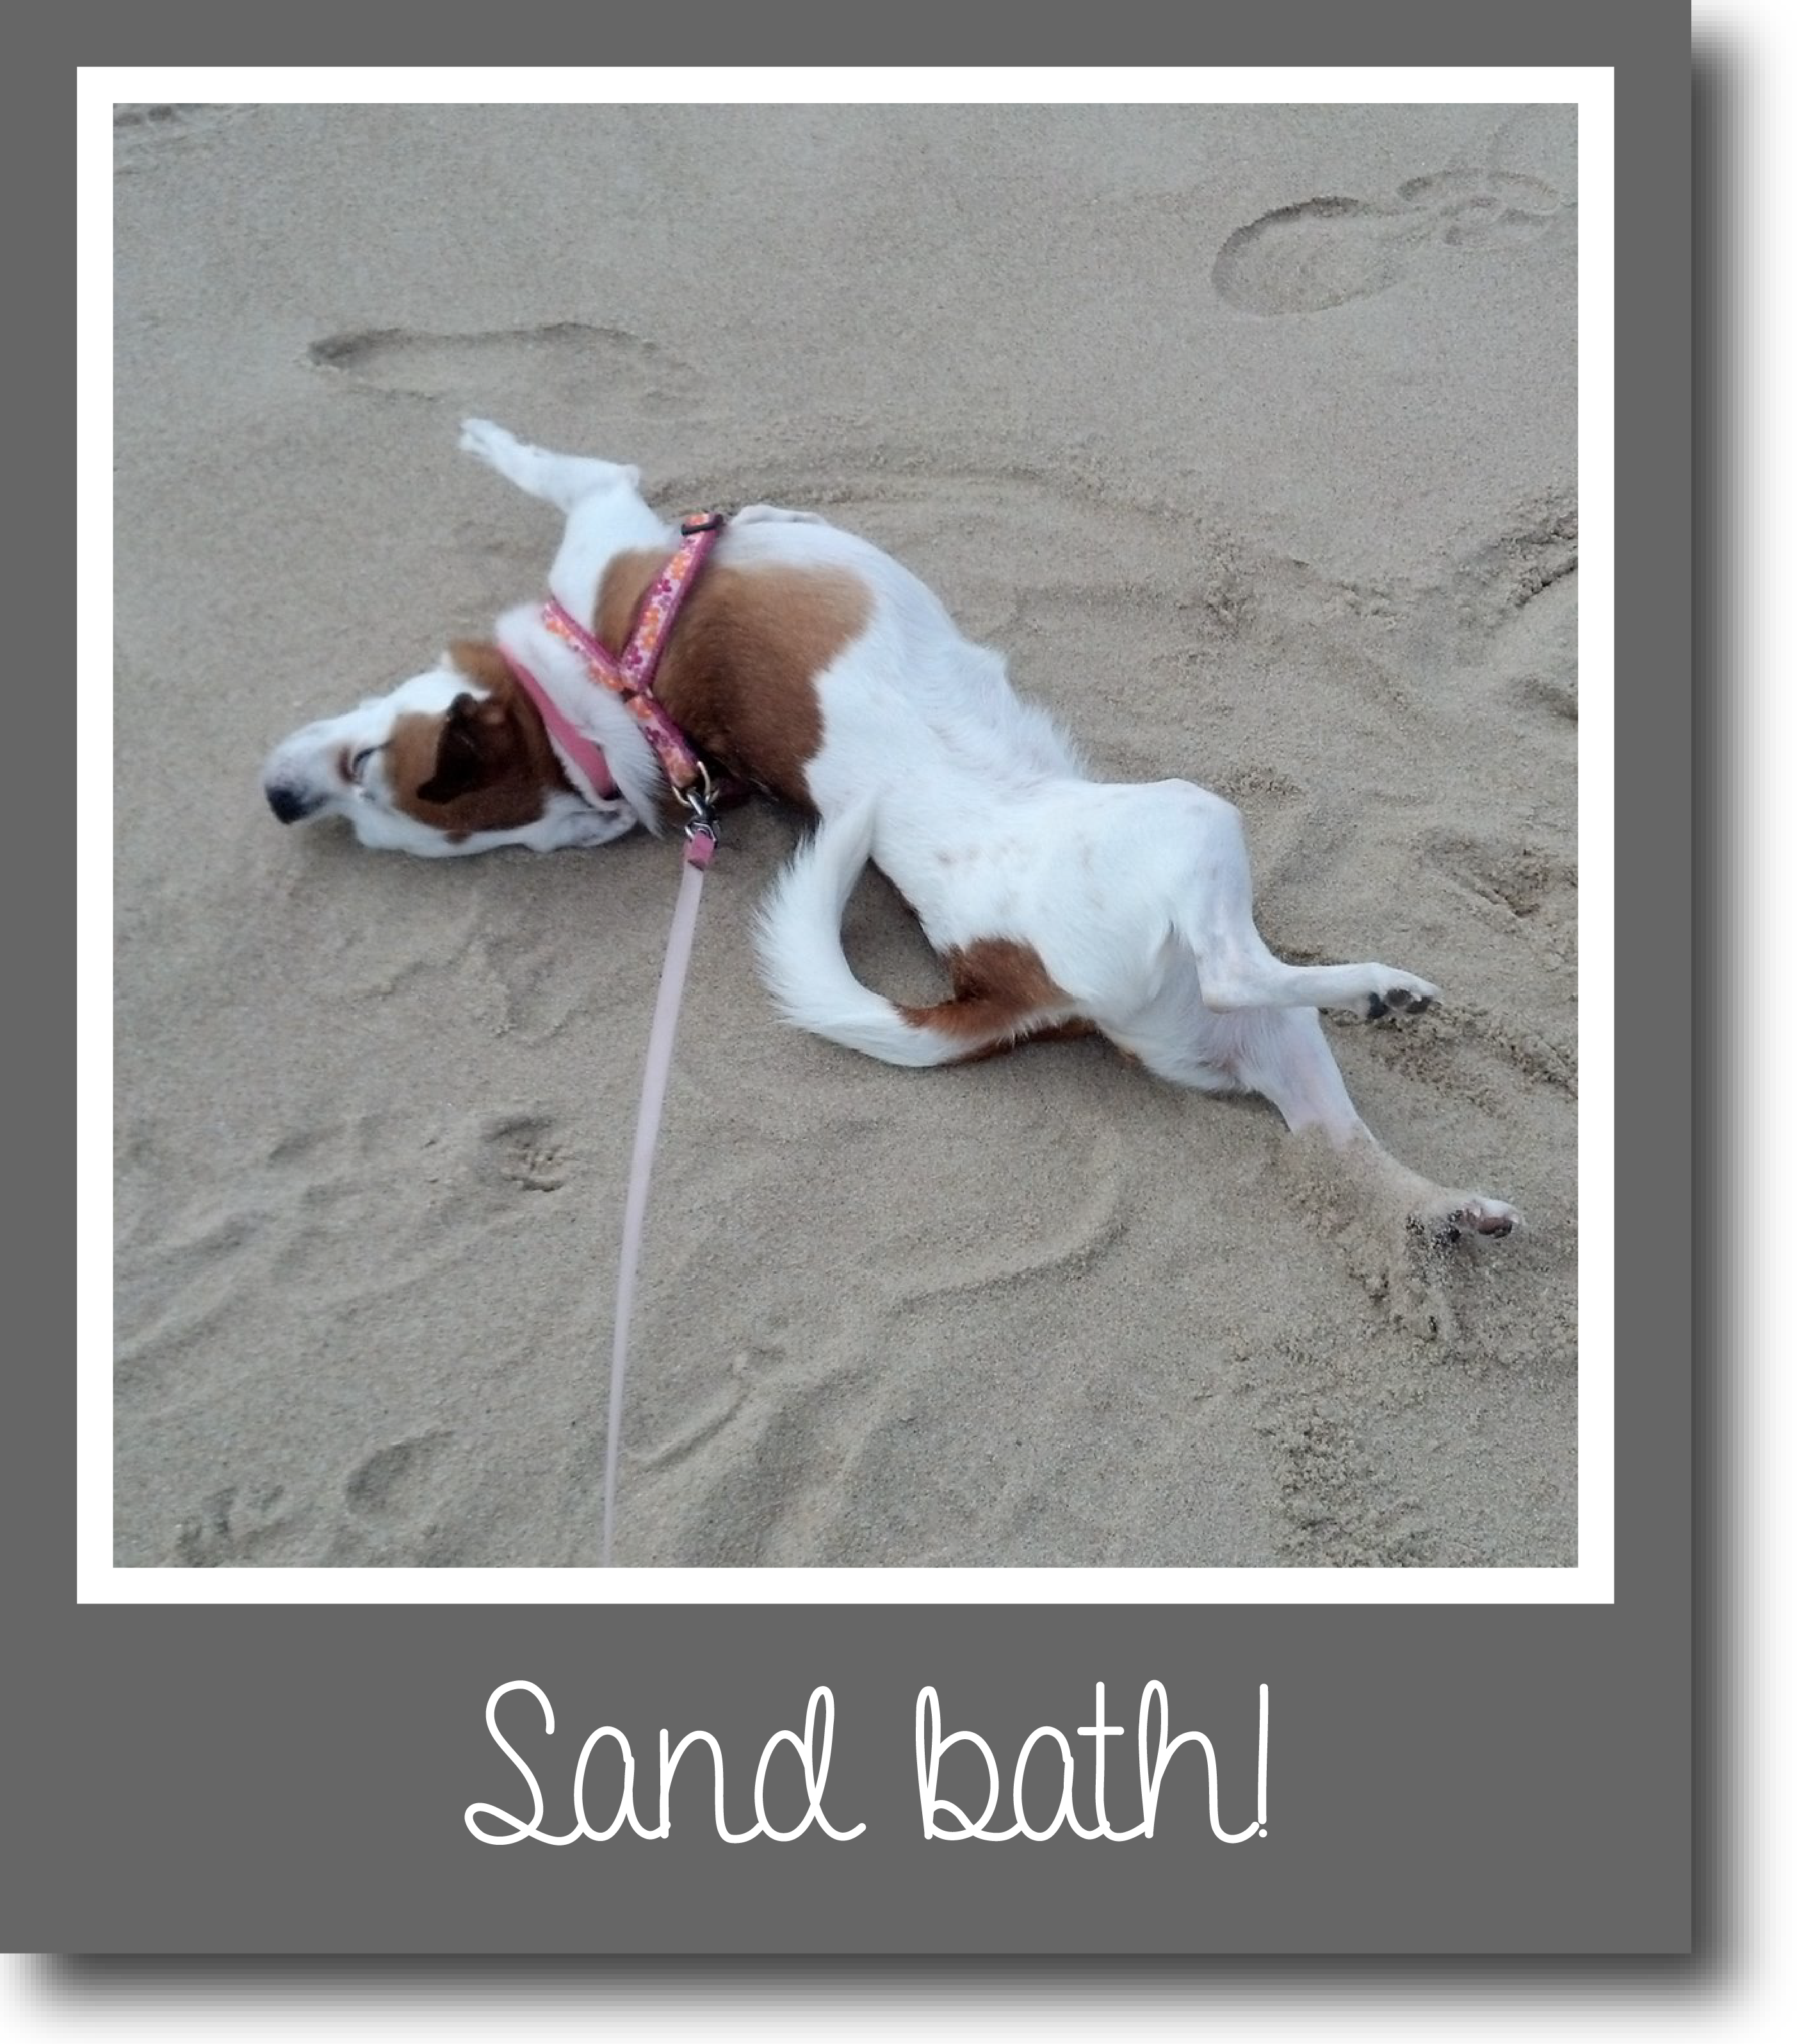 Tilly's Travels - Sand bath!